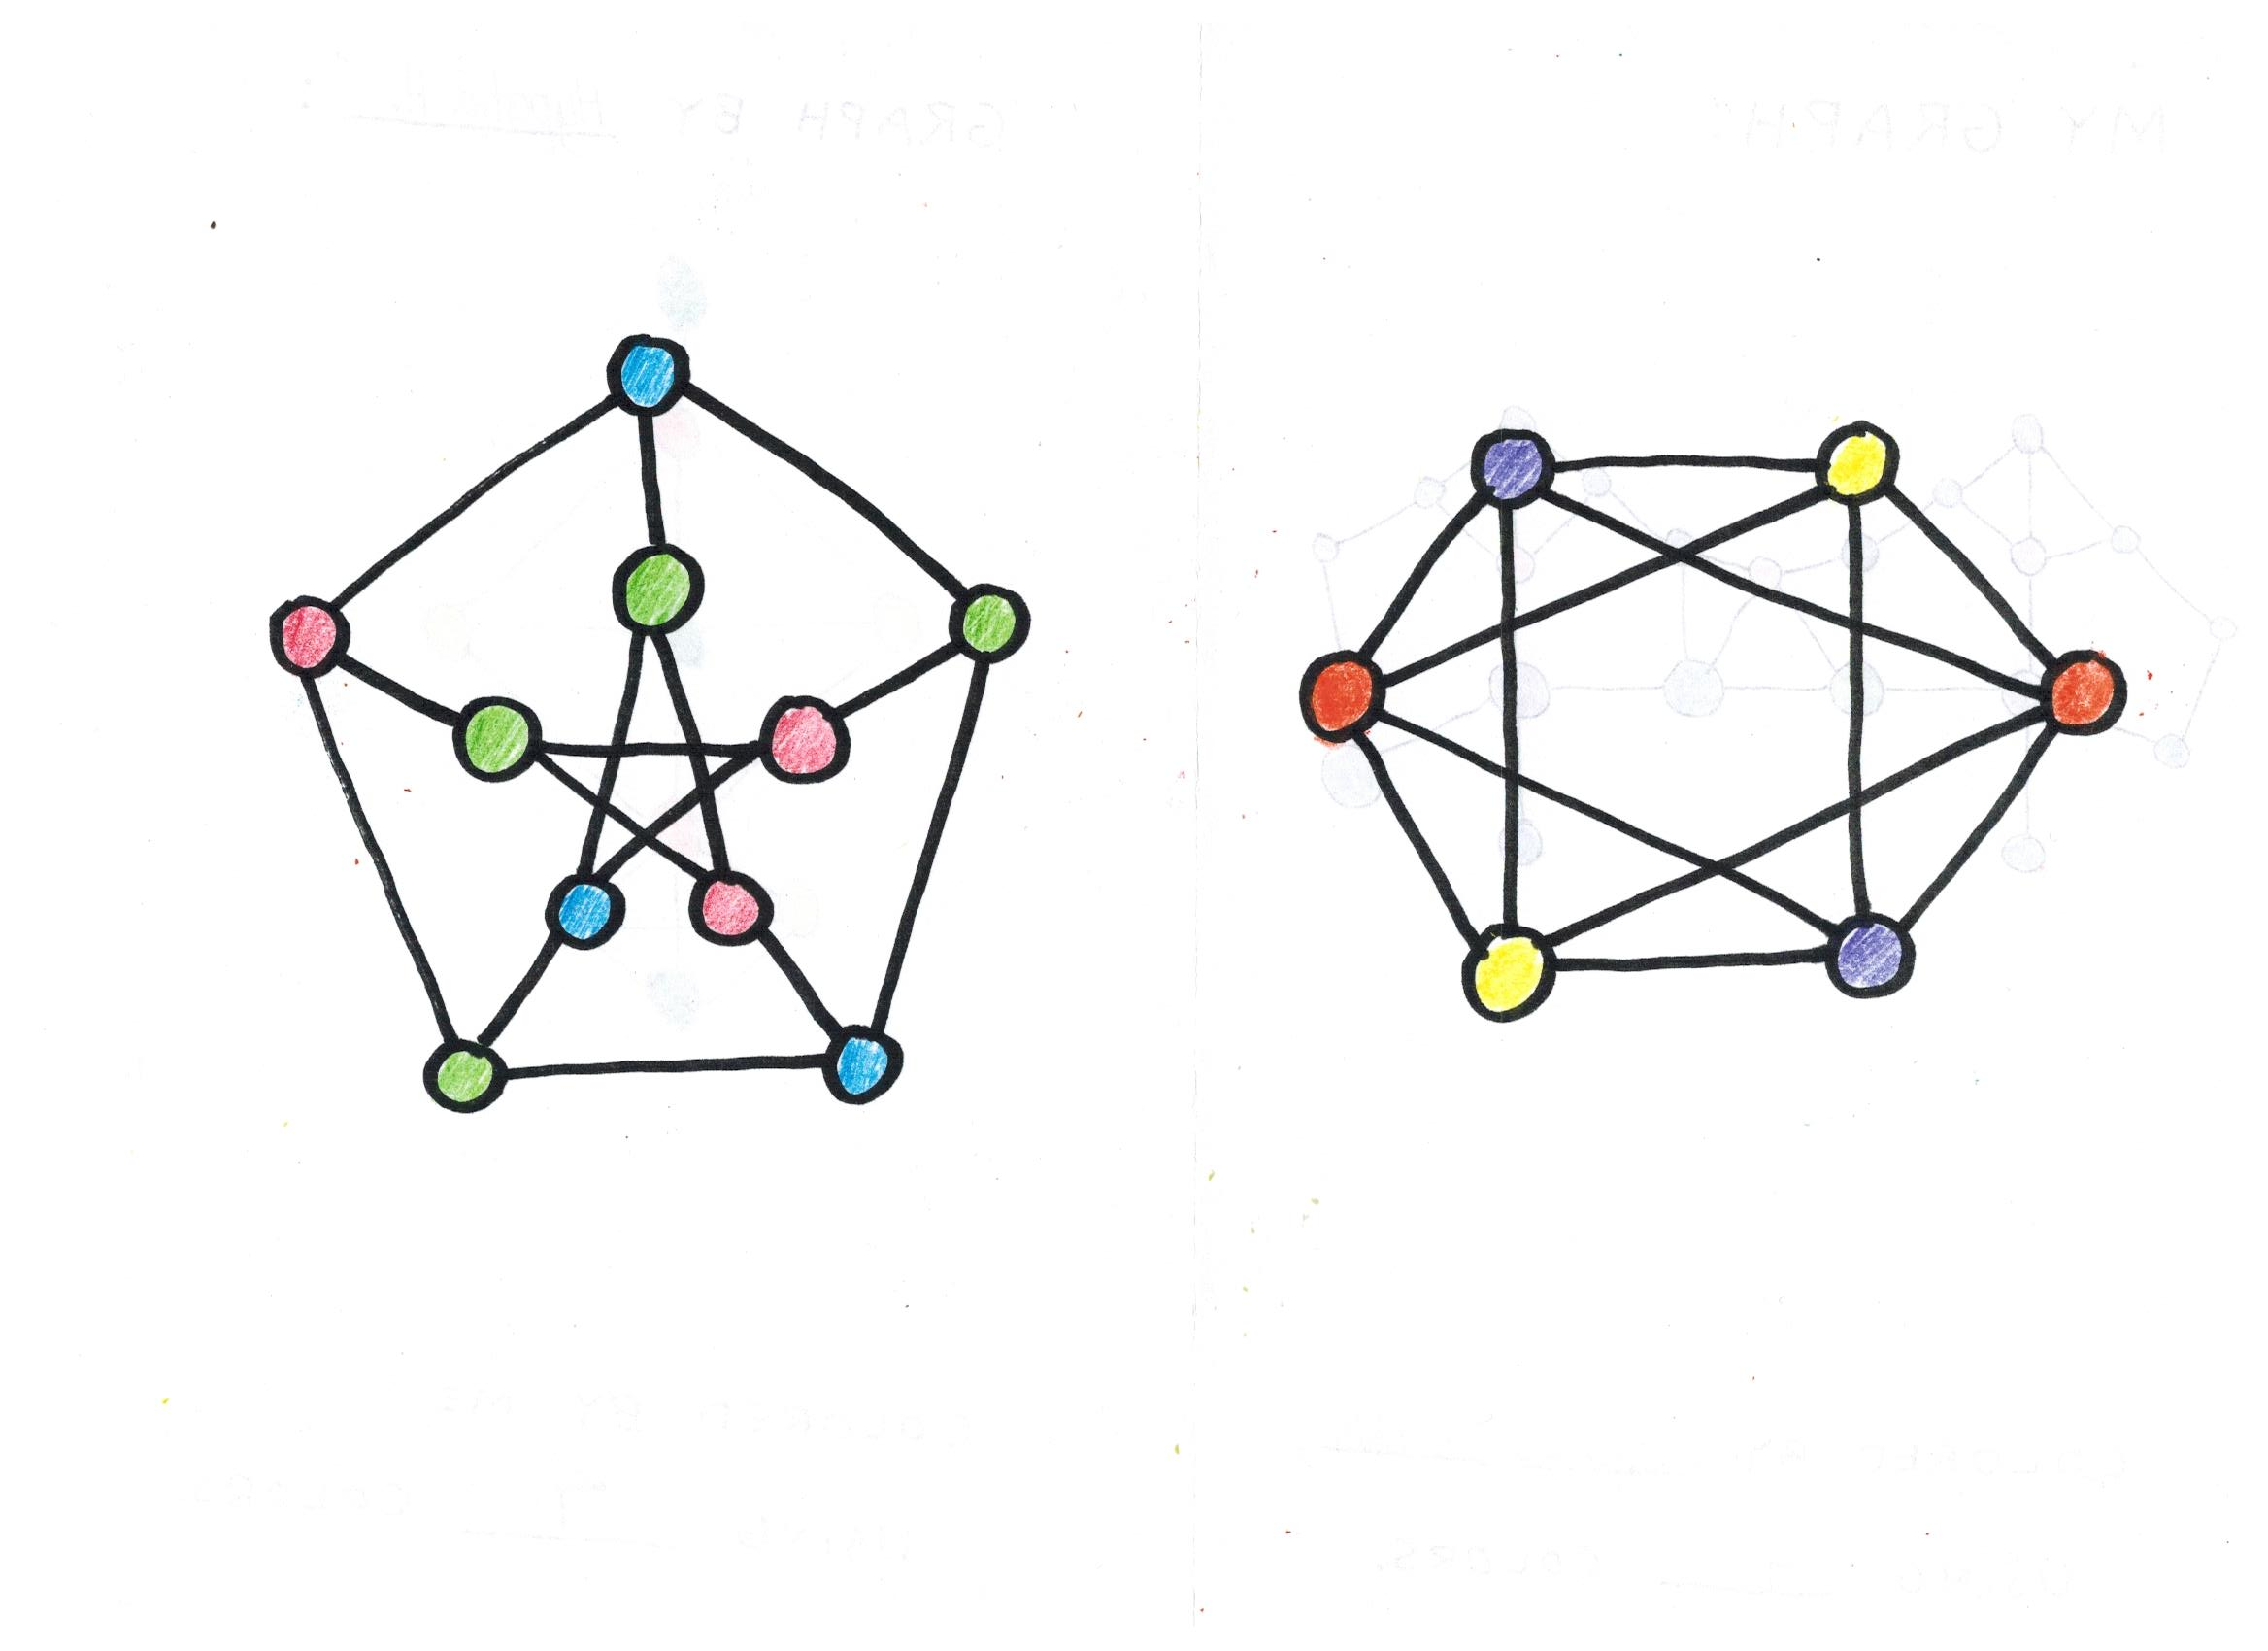 Math for seven-year-olds: graph coloring, chromatic numbers, and